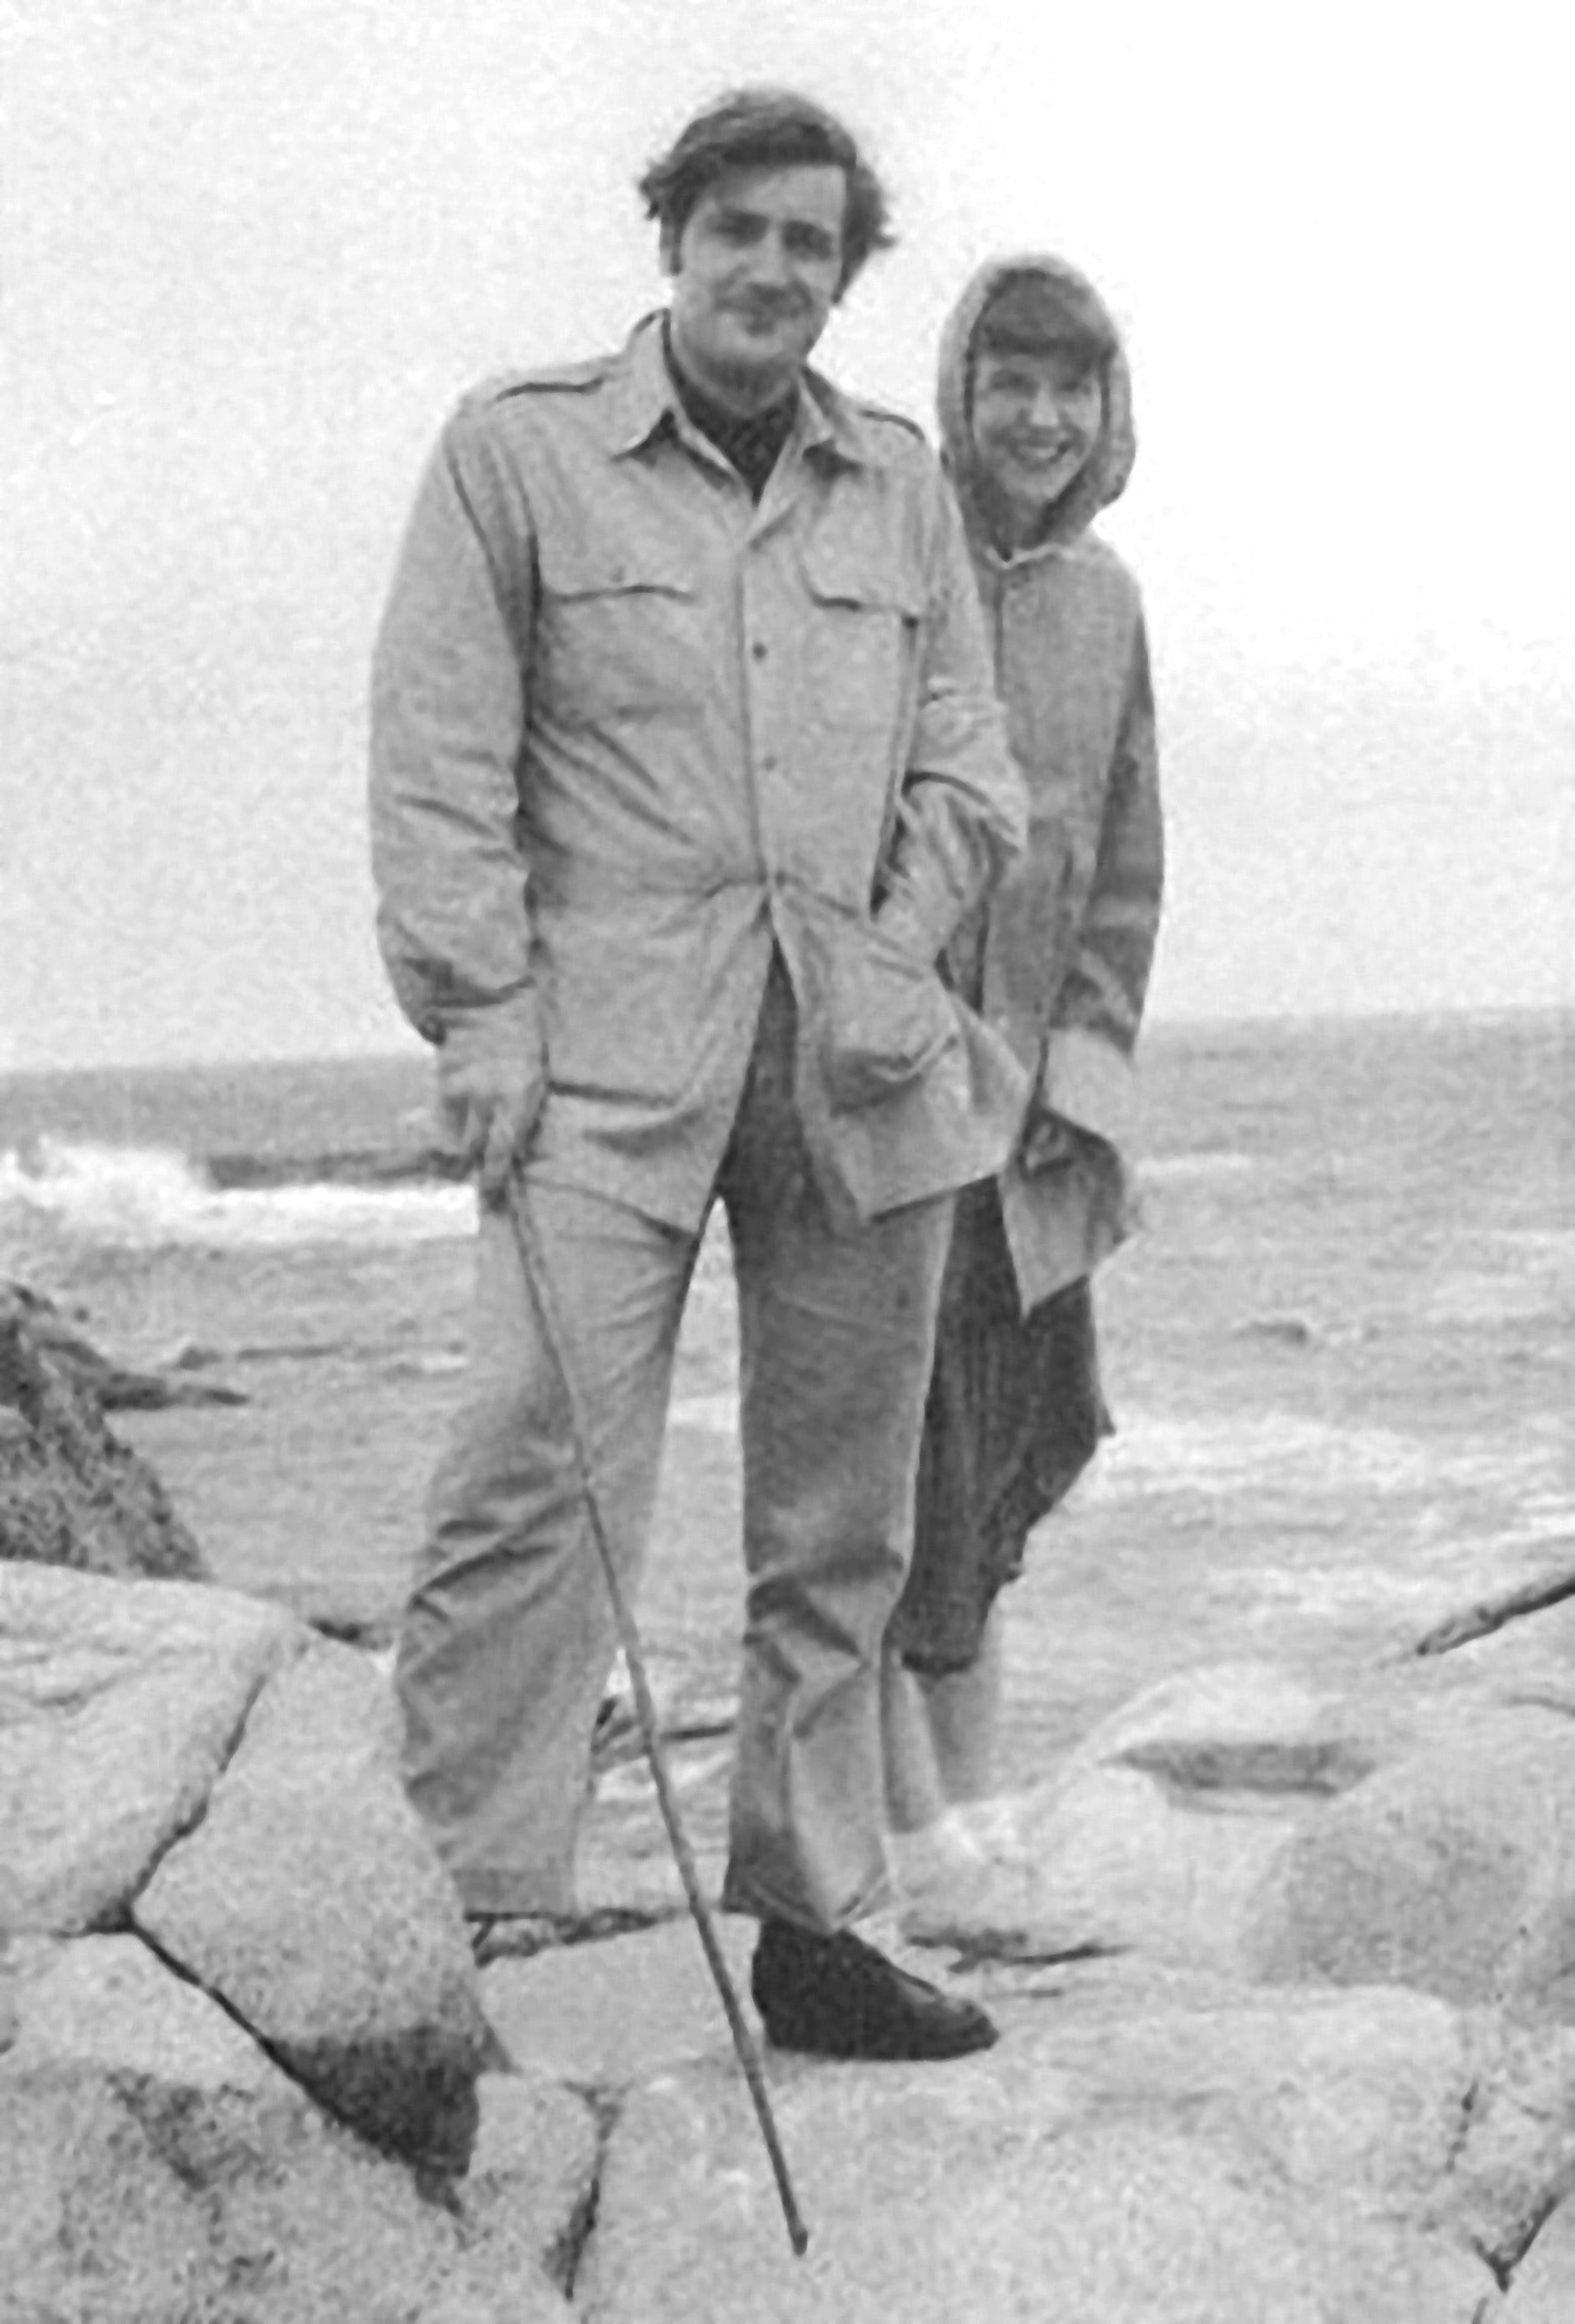 Hughes and Plath in Massachusetts, May 20, 1959